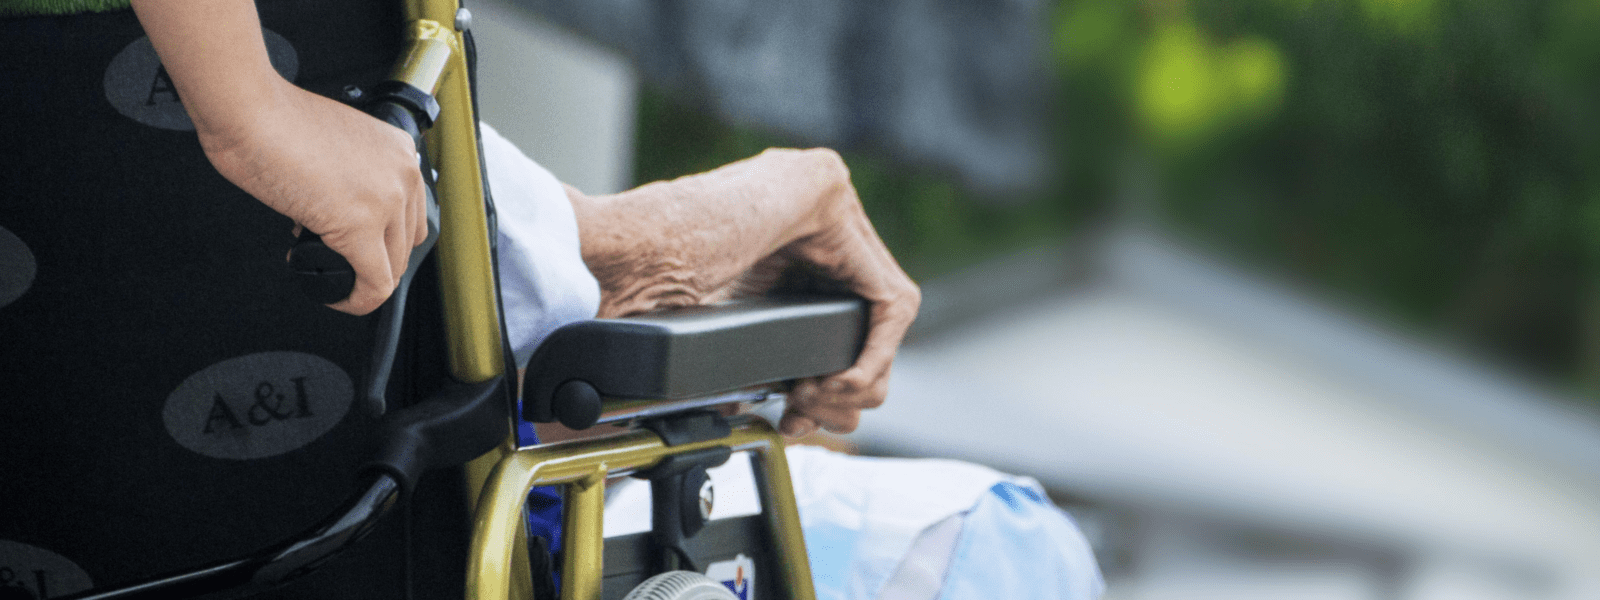 Senate Republicans Ask Governor Lamont to Expand Nursing Home Visitation for All Residents